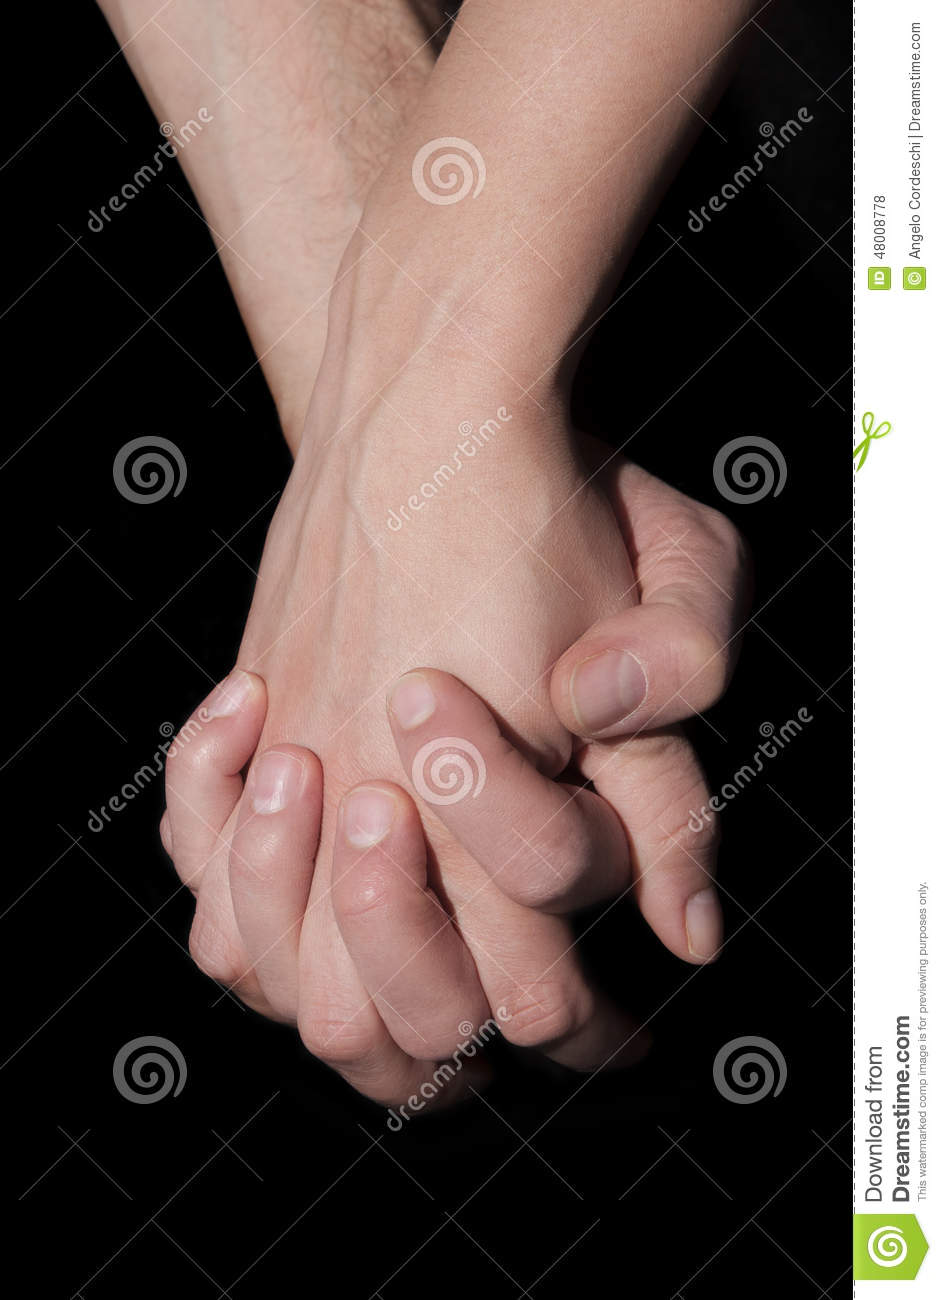 Holding two hands together. Union and love concept.